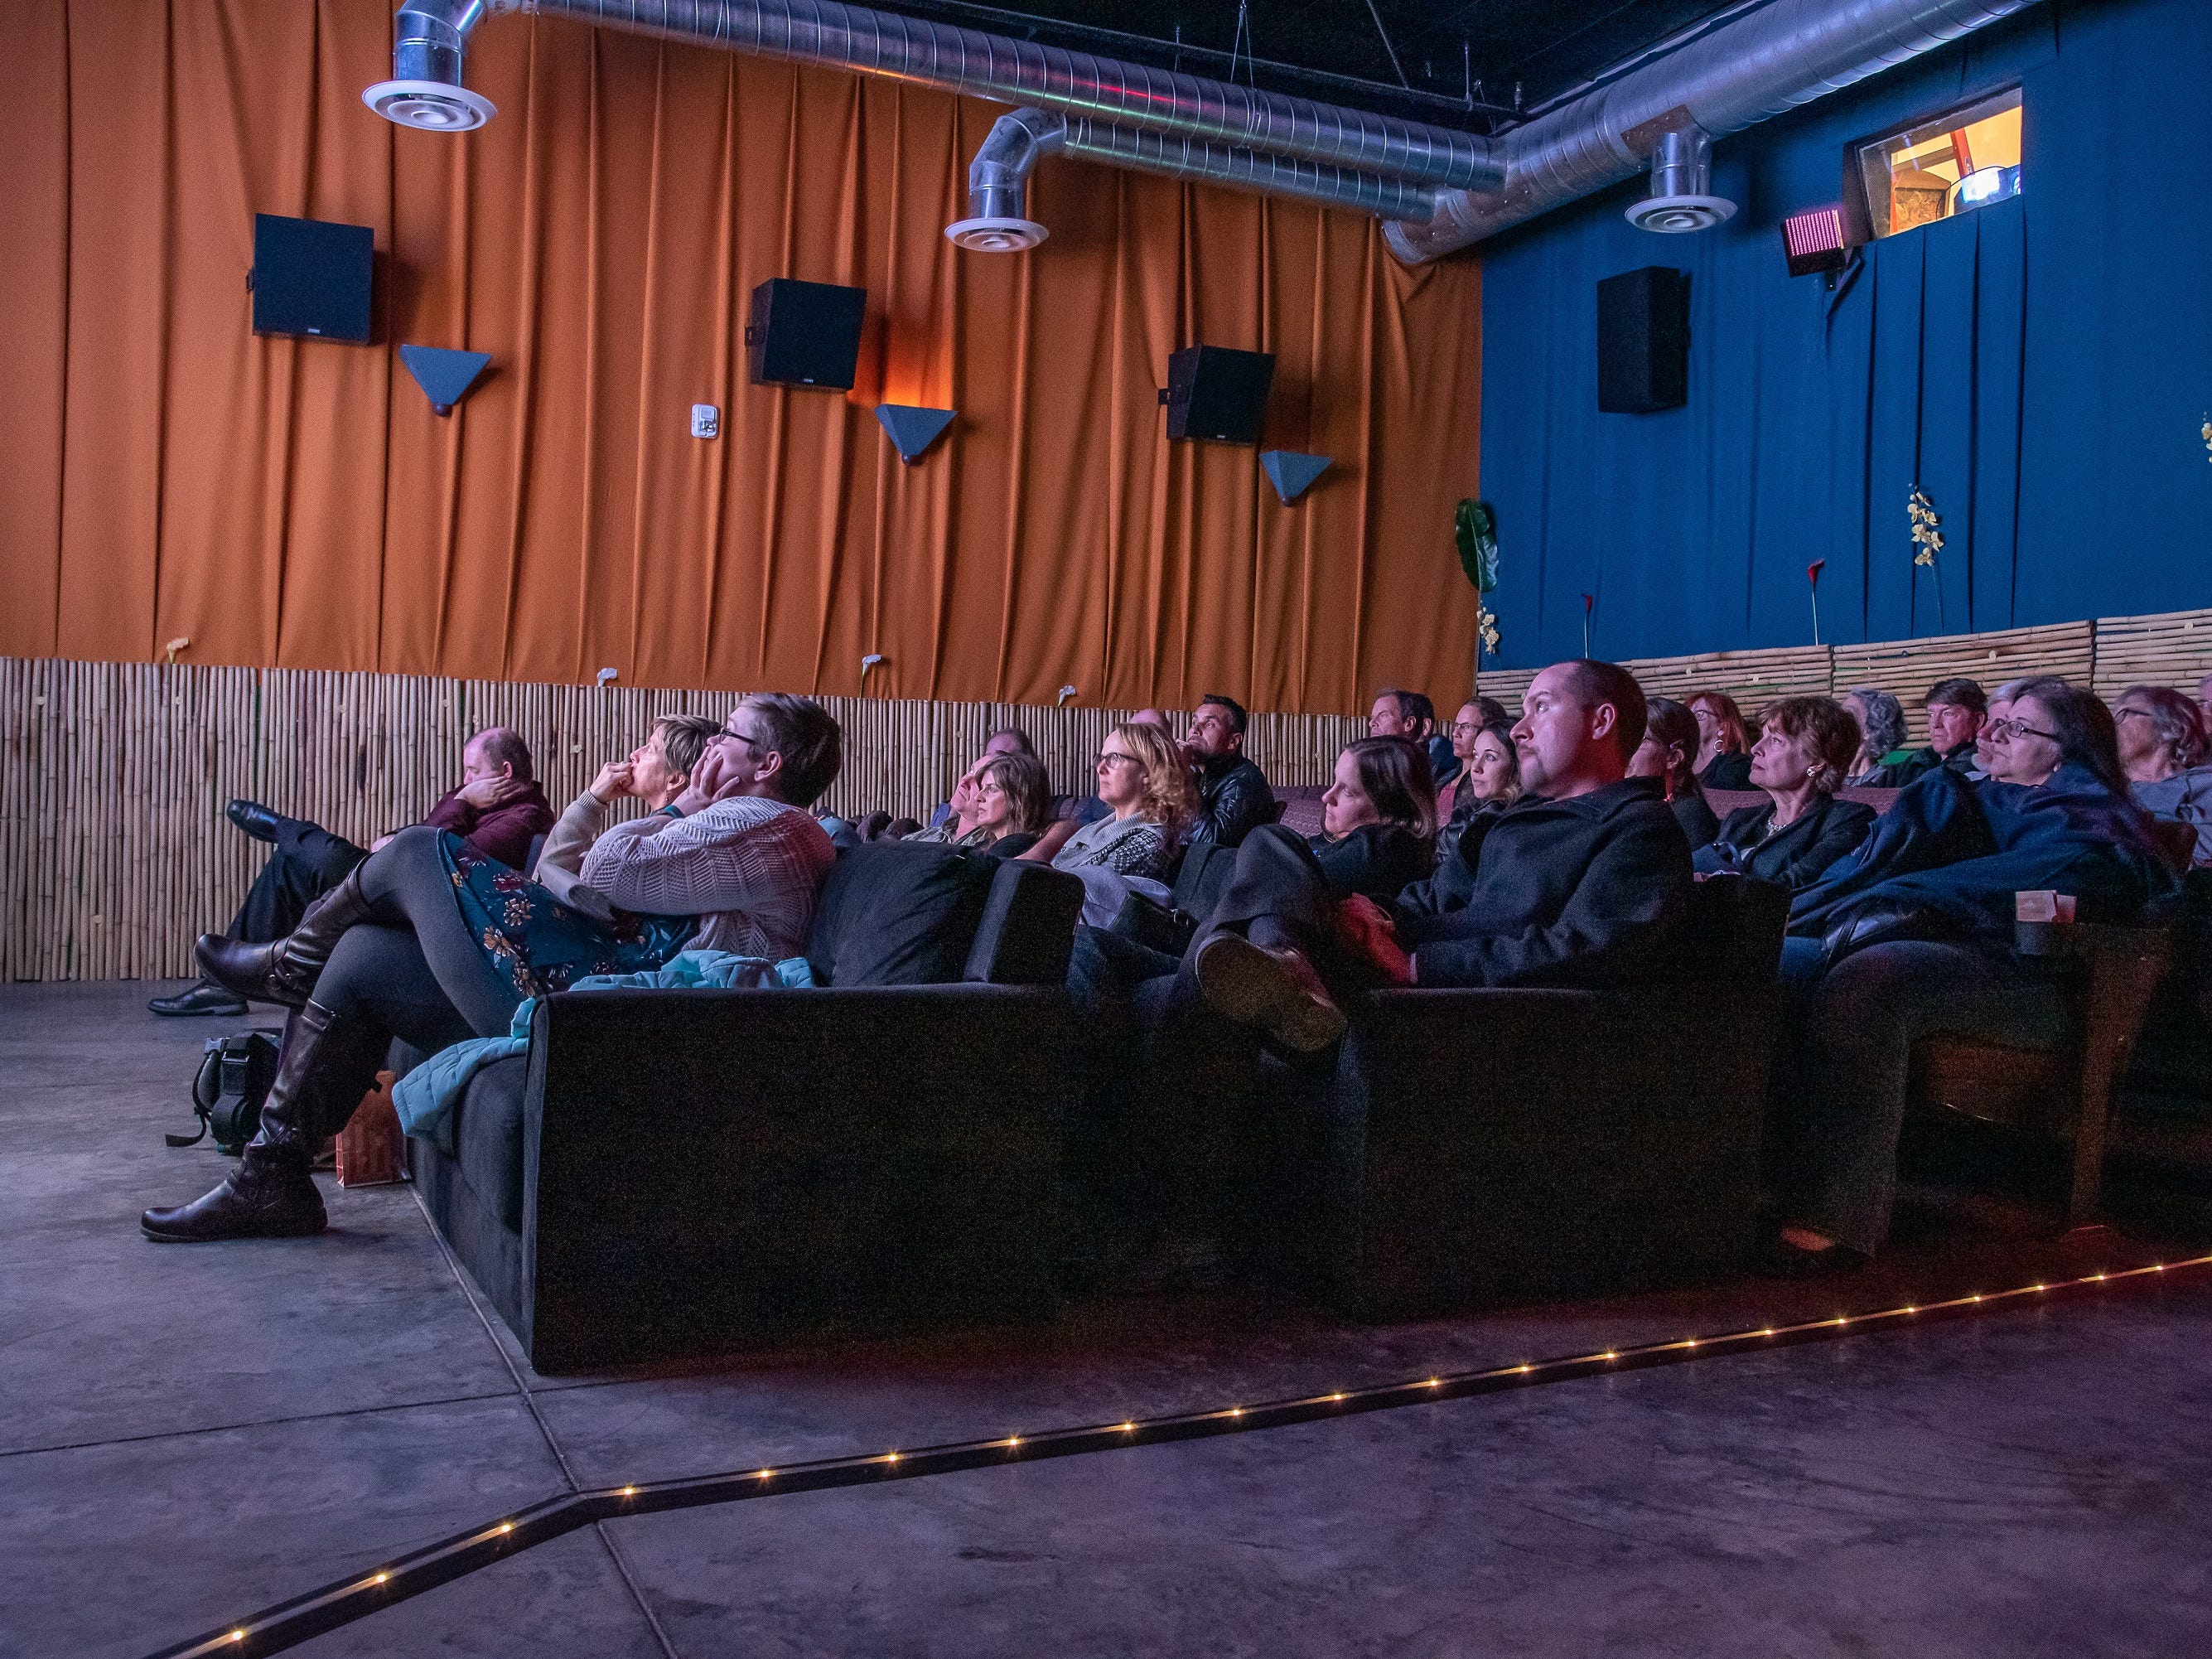 Attendees in an overflow room watch Fort Collins mayor Wade Troxell and City Manager Darin Atteberry on a large screen as they address a crowd during the annual State of the City Address on Tuesday, January 29, 2019, at the Lyric Cinema in Fort Collins, Colo.